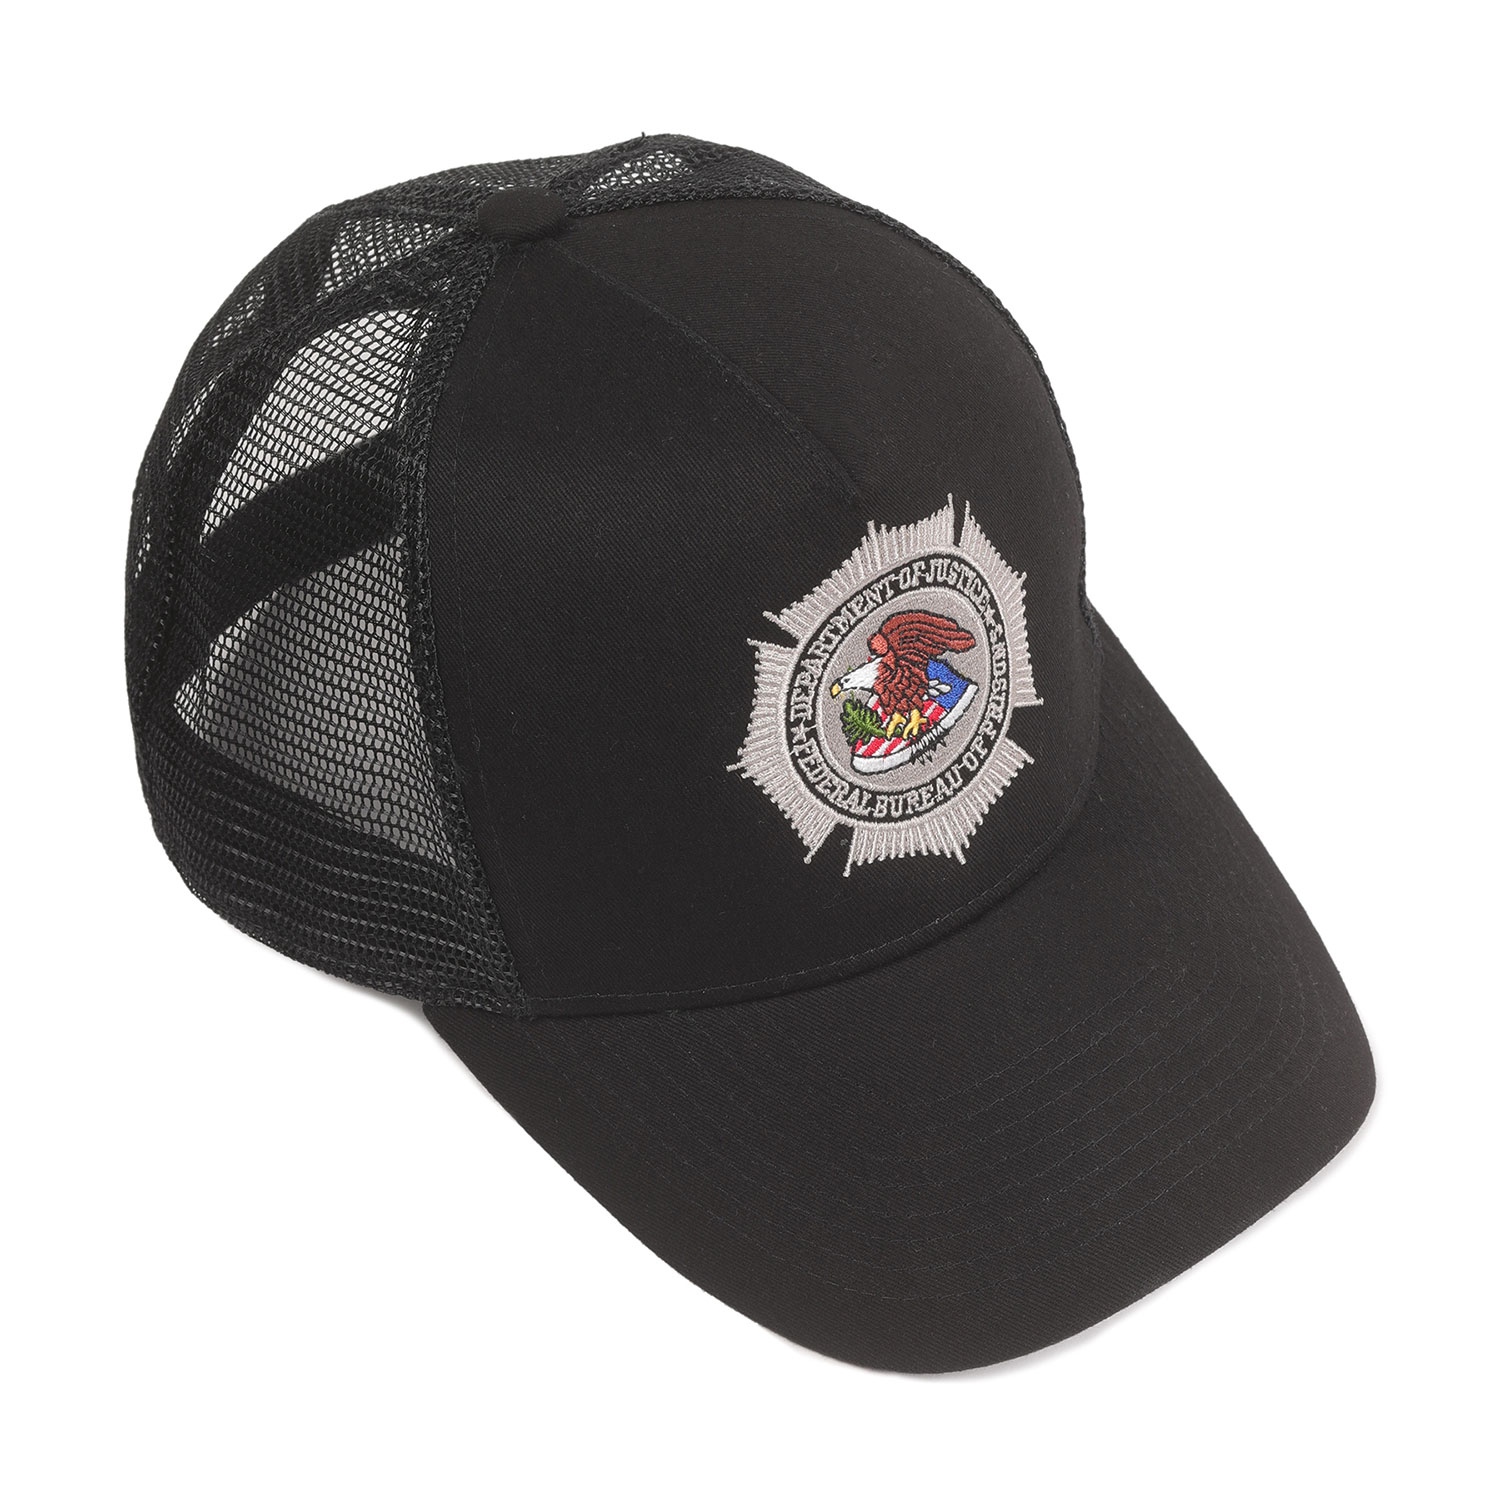 Galls FBOP Mesh Back Twill Cap - BOP Uniform Cap